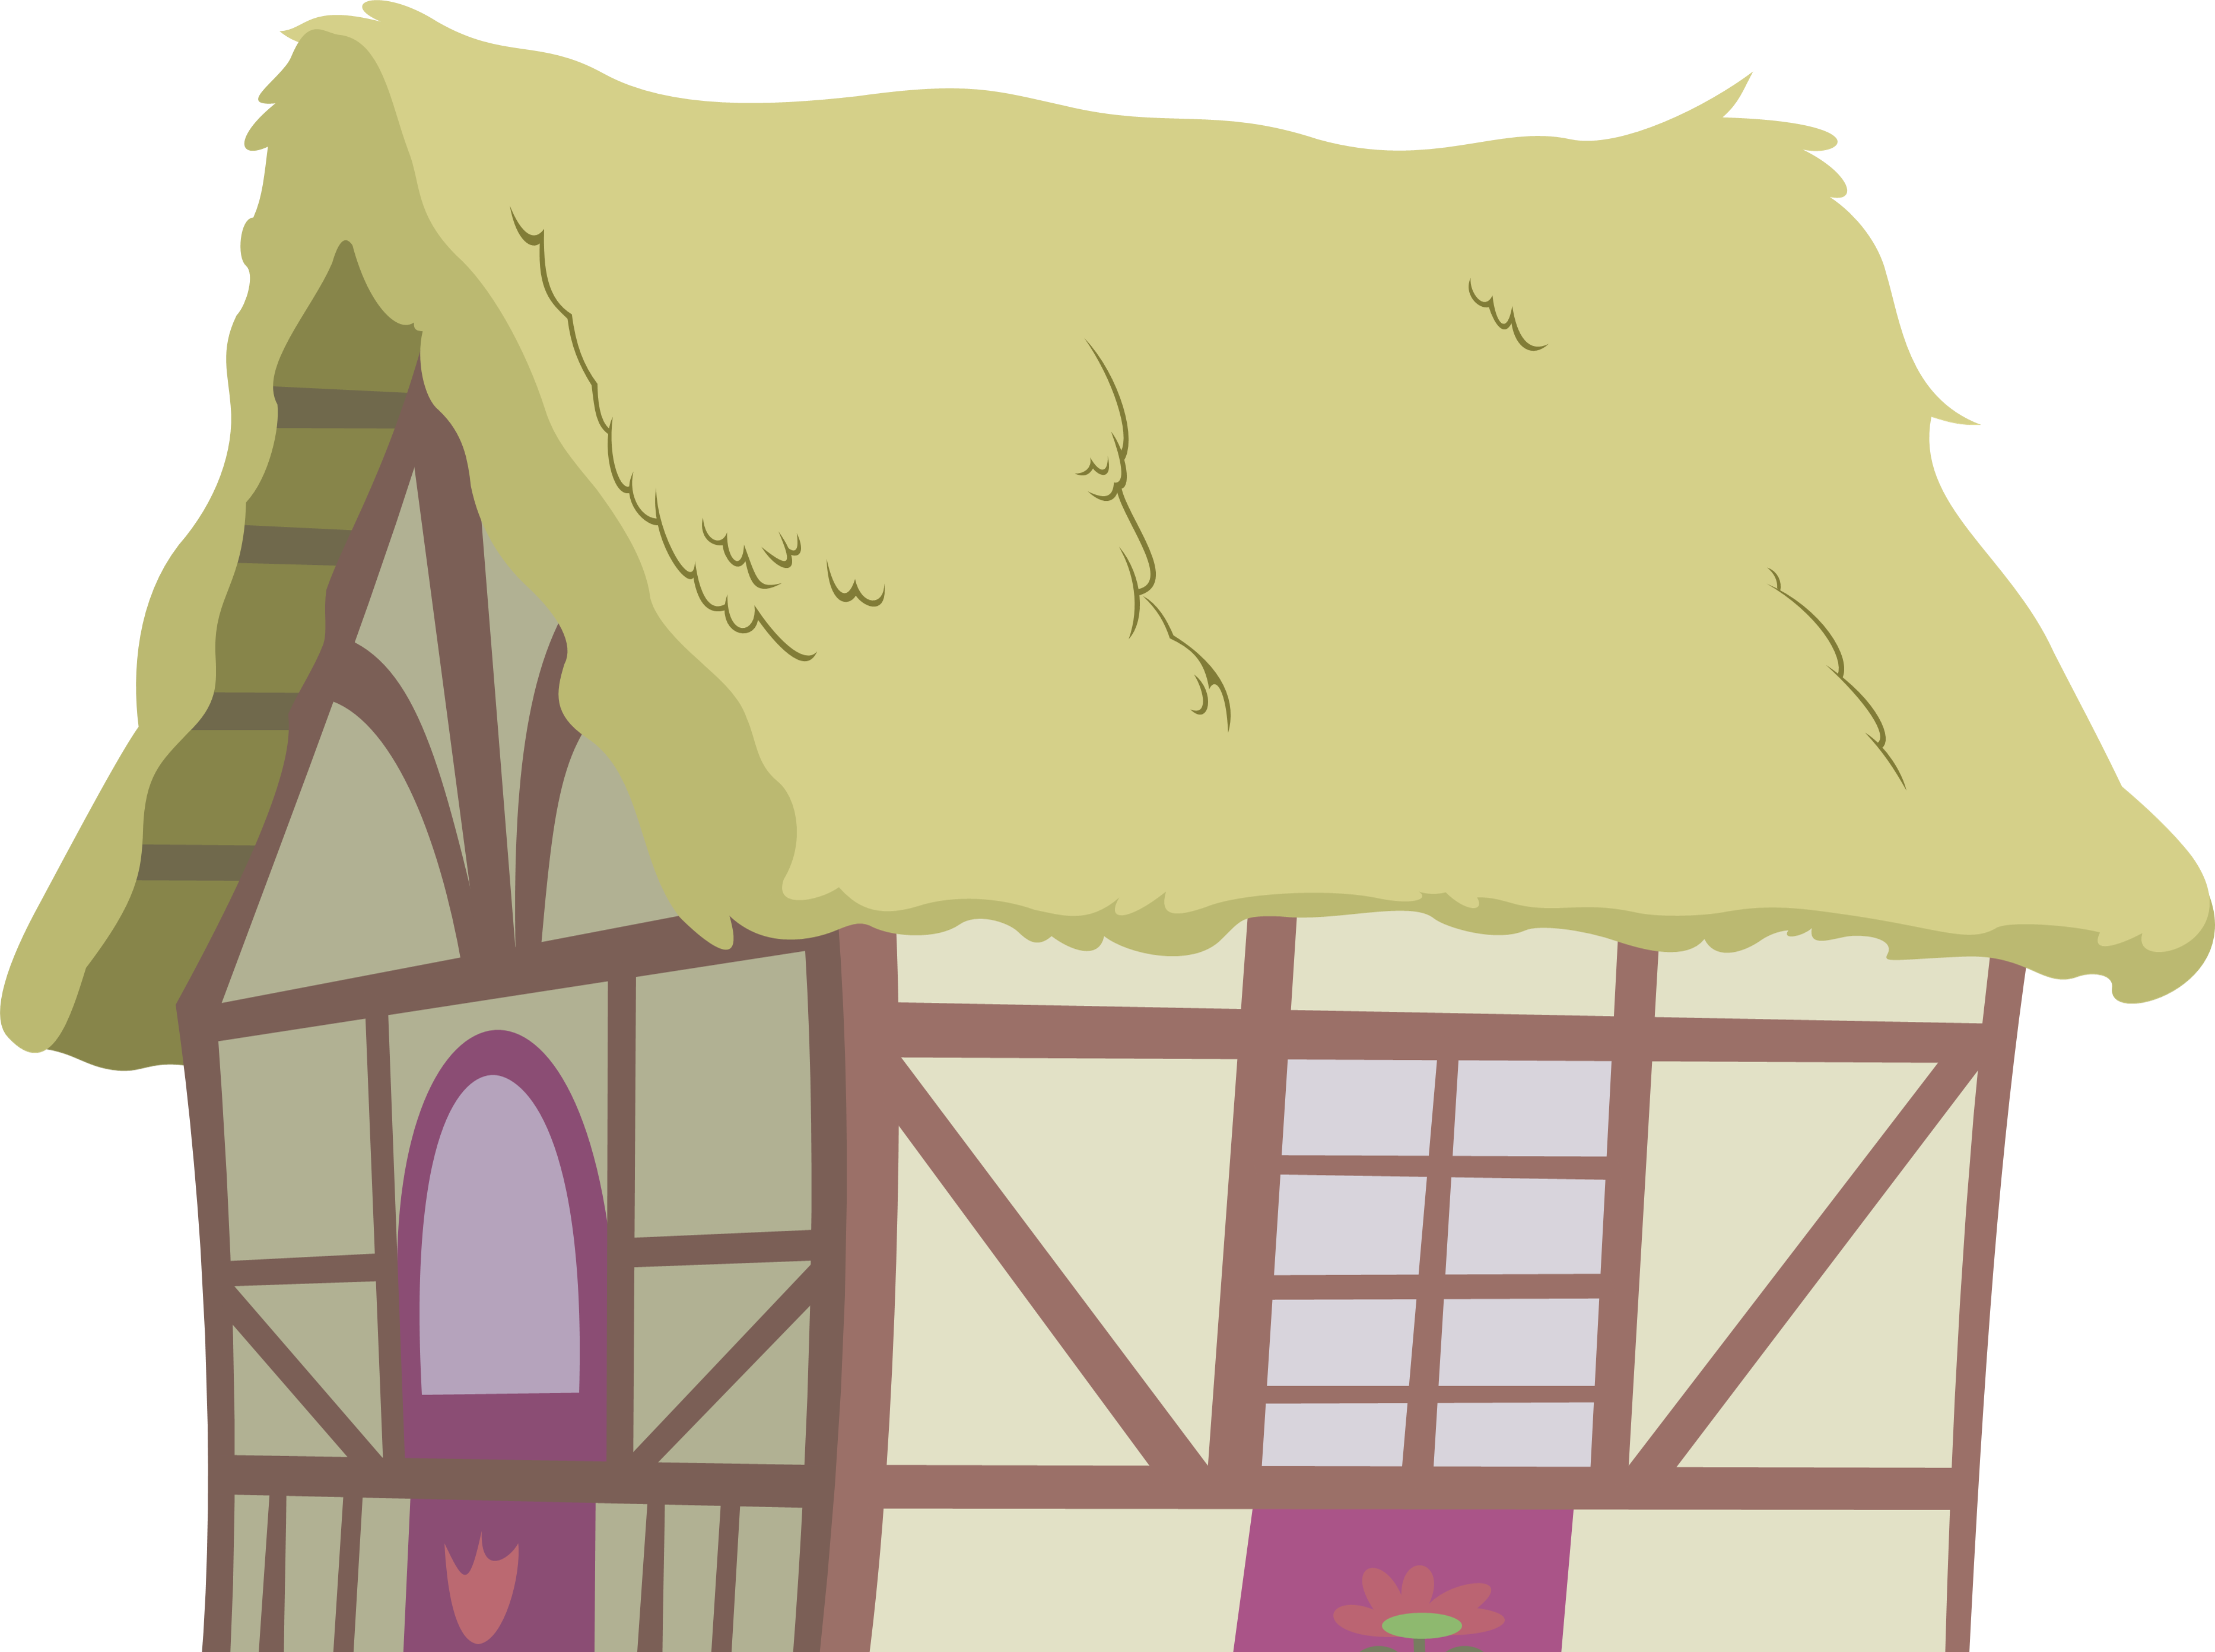 Inside house background clipart clip free Ponyville House 2 by Zacatron94 on DeviantArt clip free